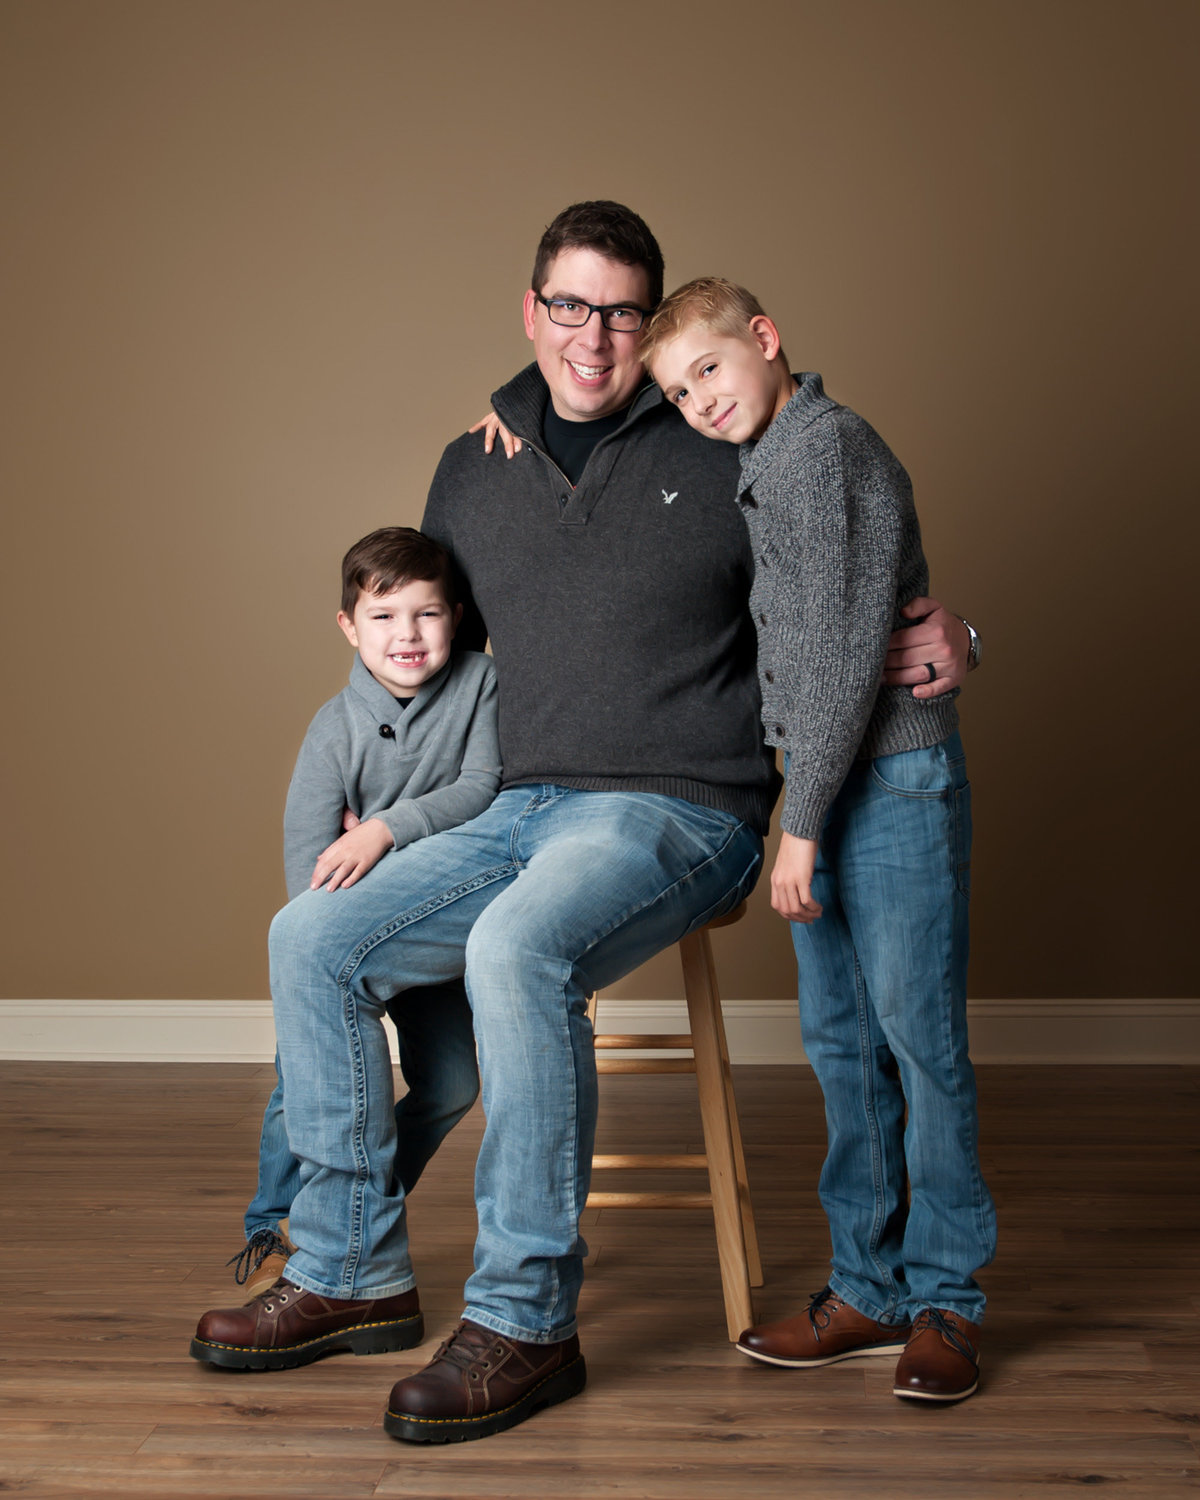 charlotte michigan family photographer